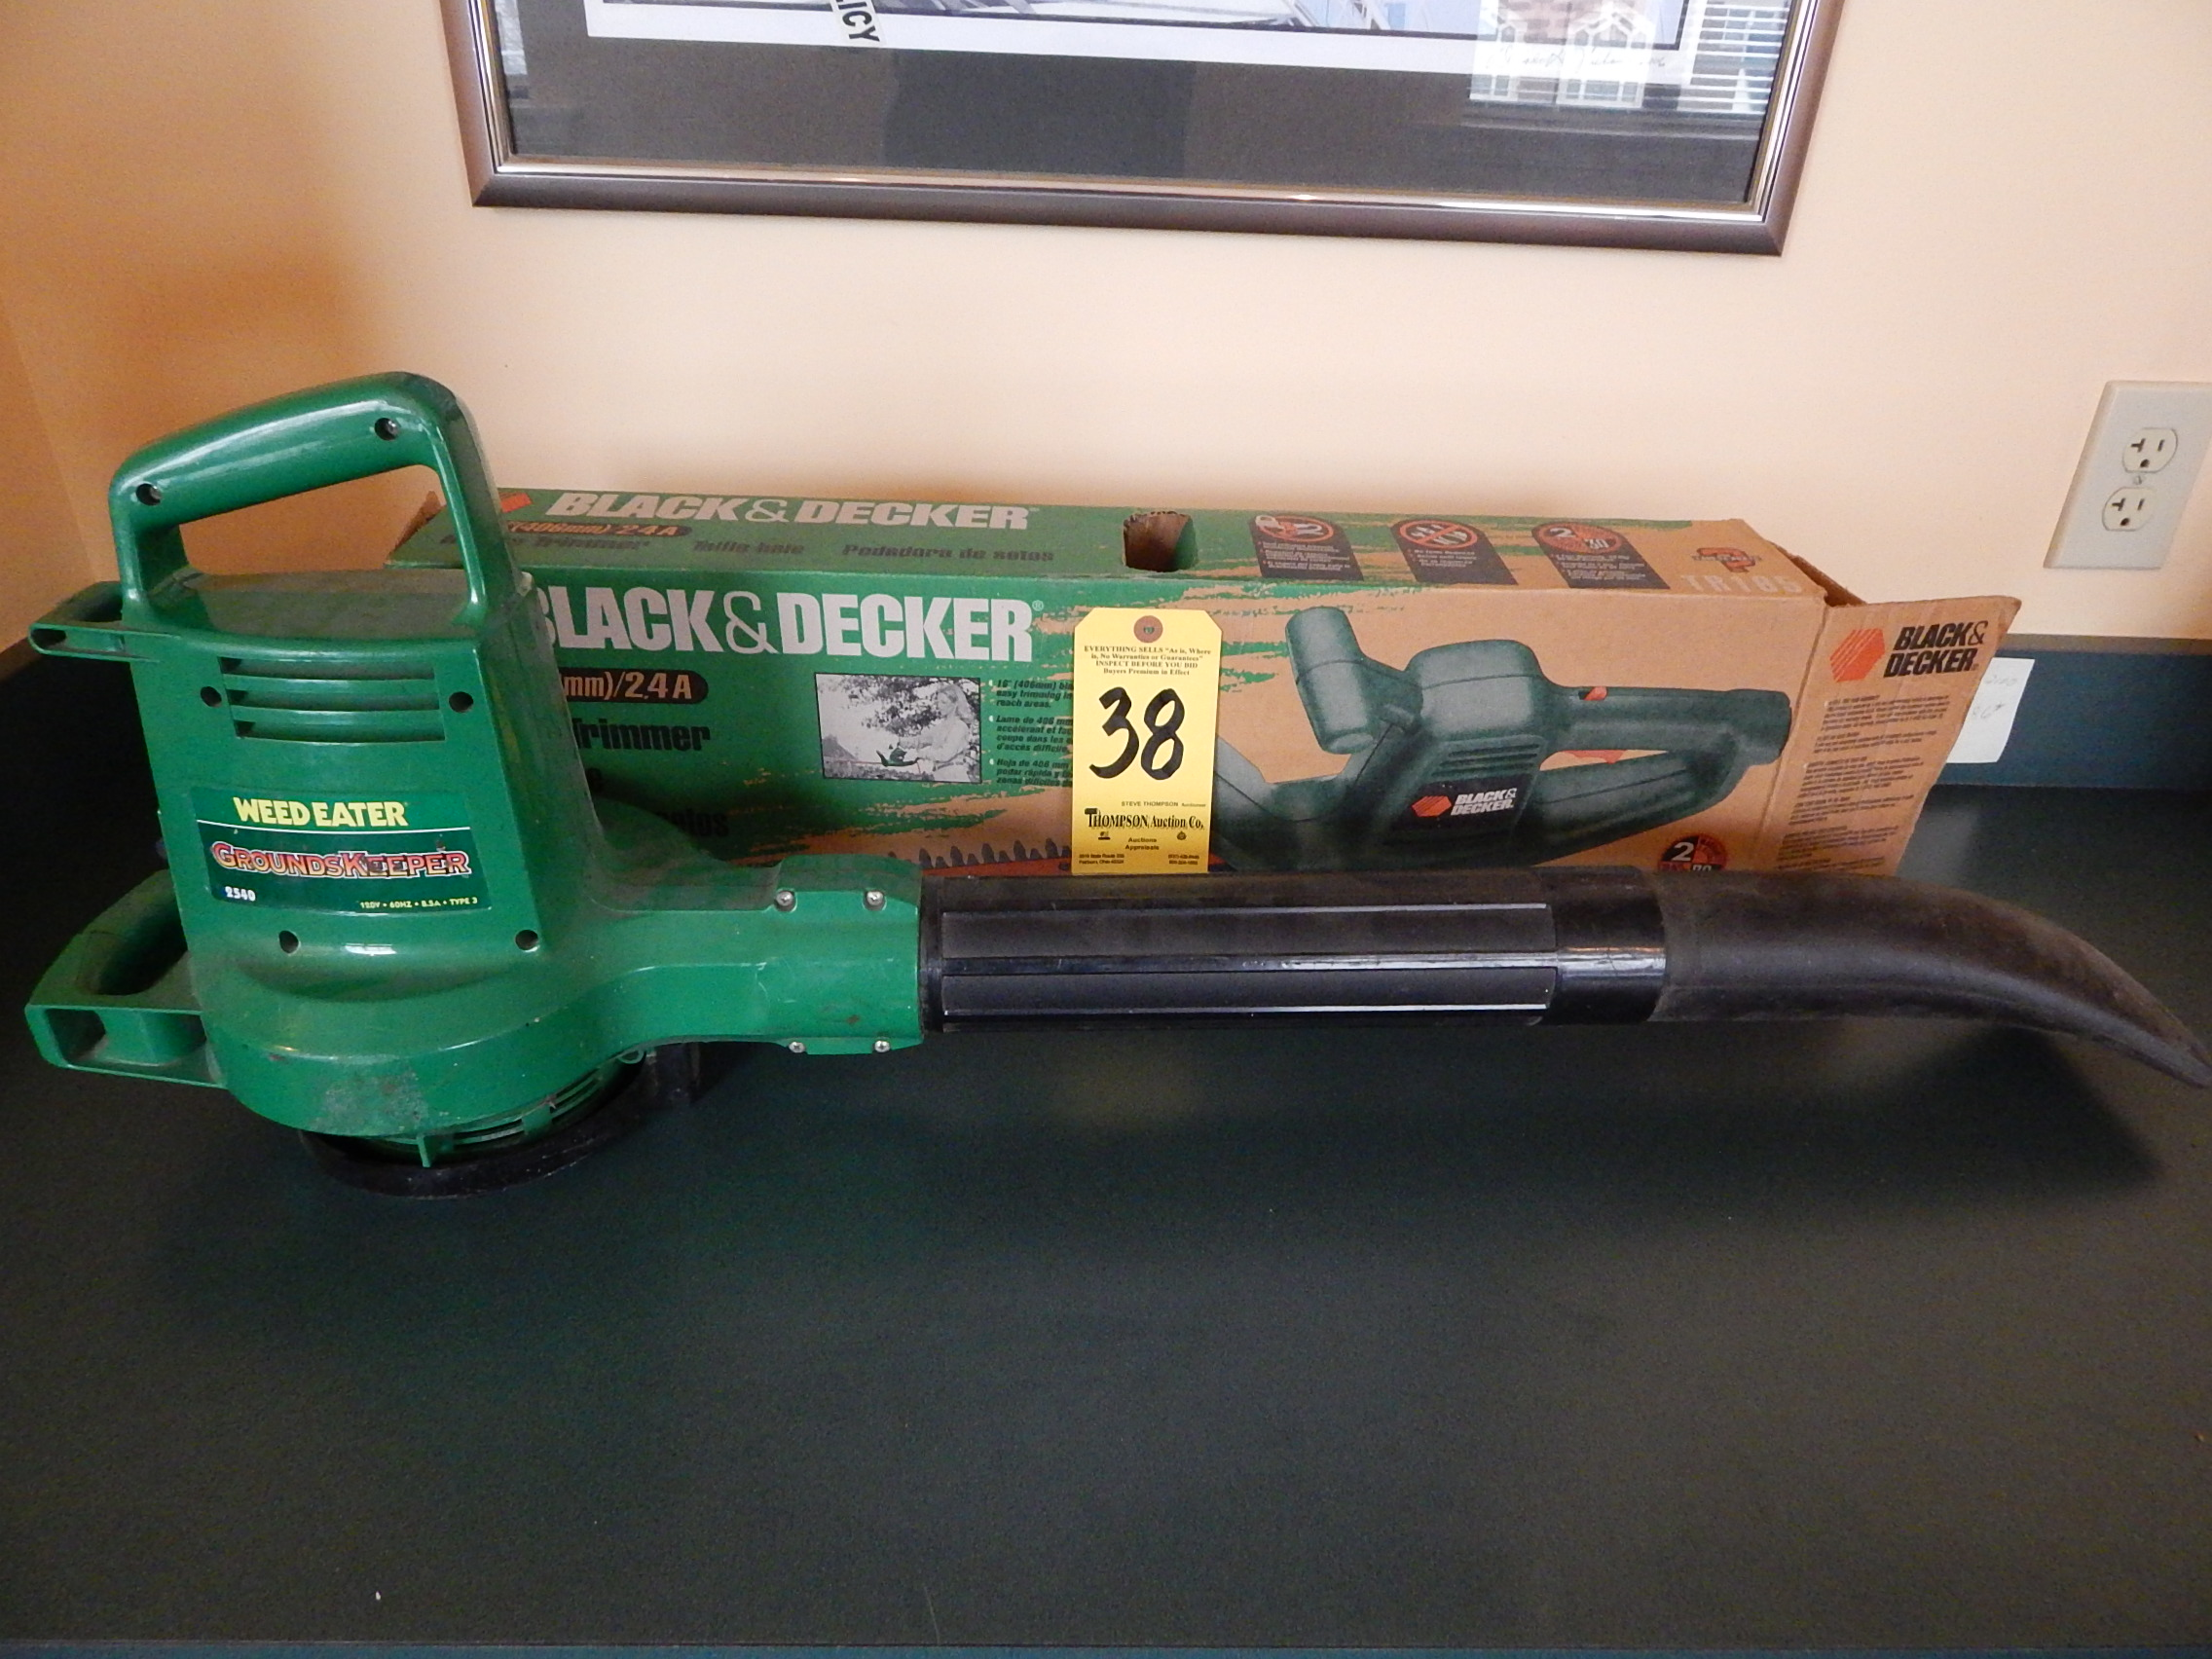 Weed Eater Electric Blower And Black Decker Hedge Trimmer